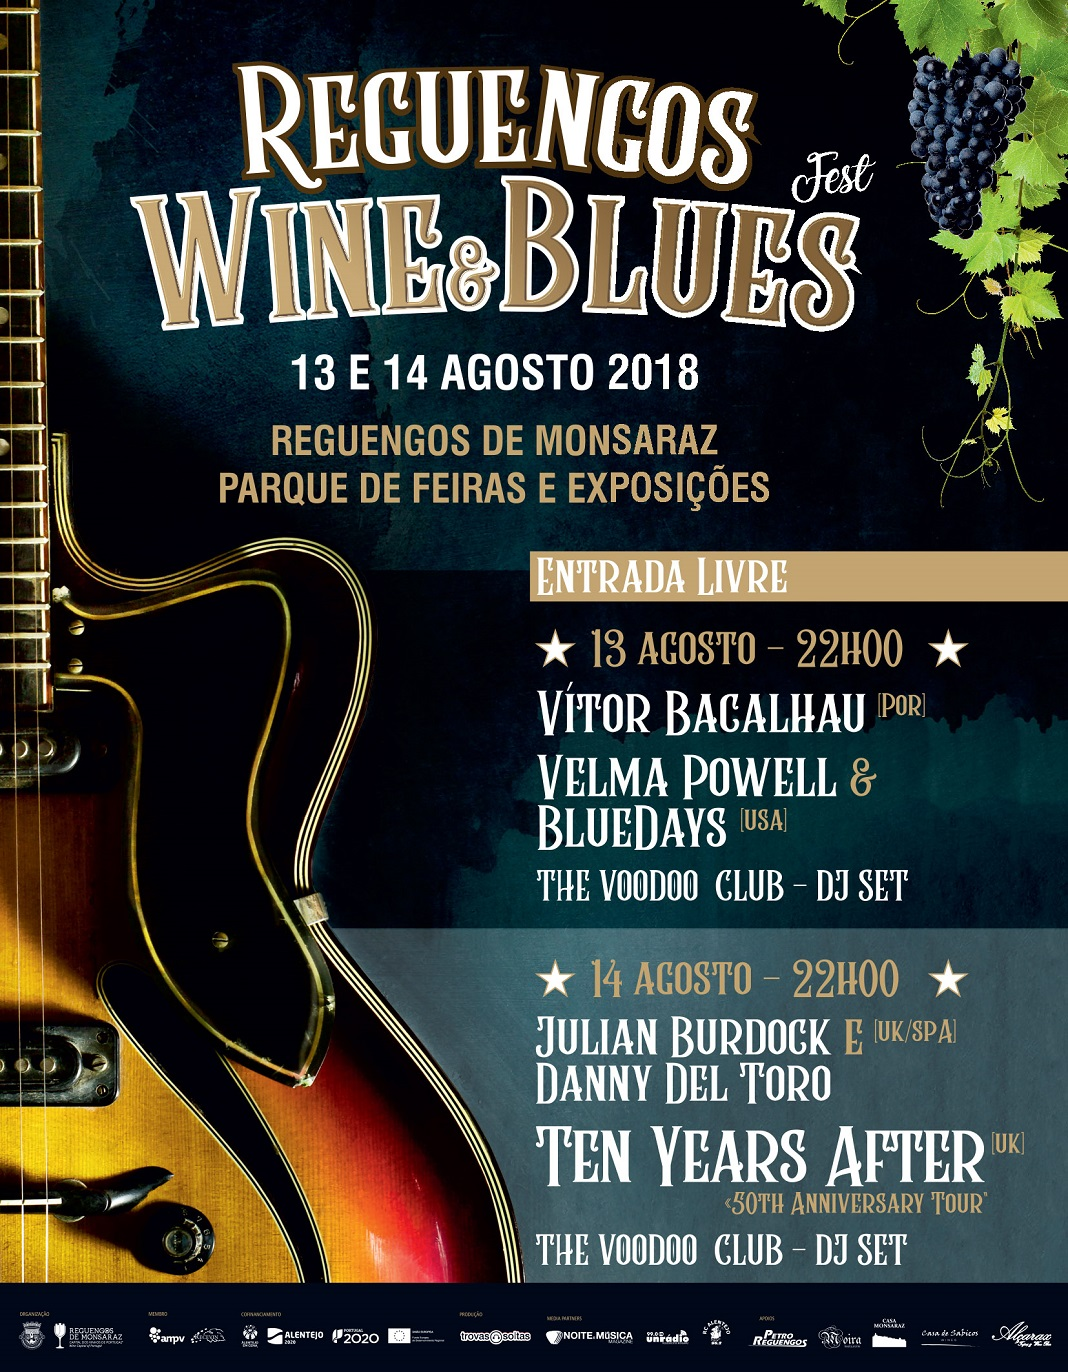 Reguengos Wine & Blues Fest